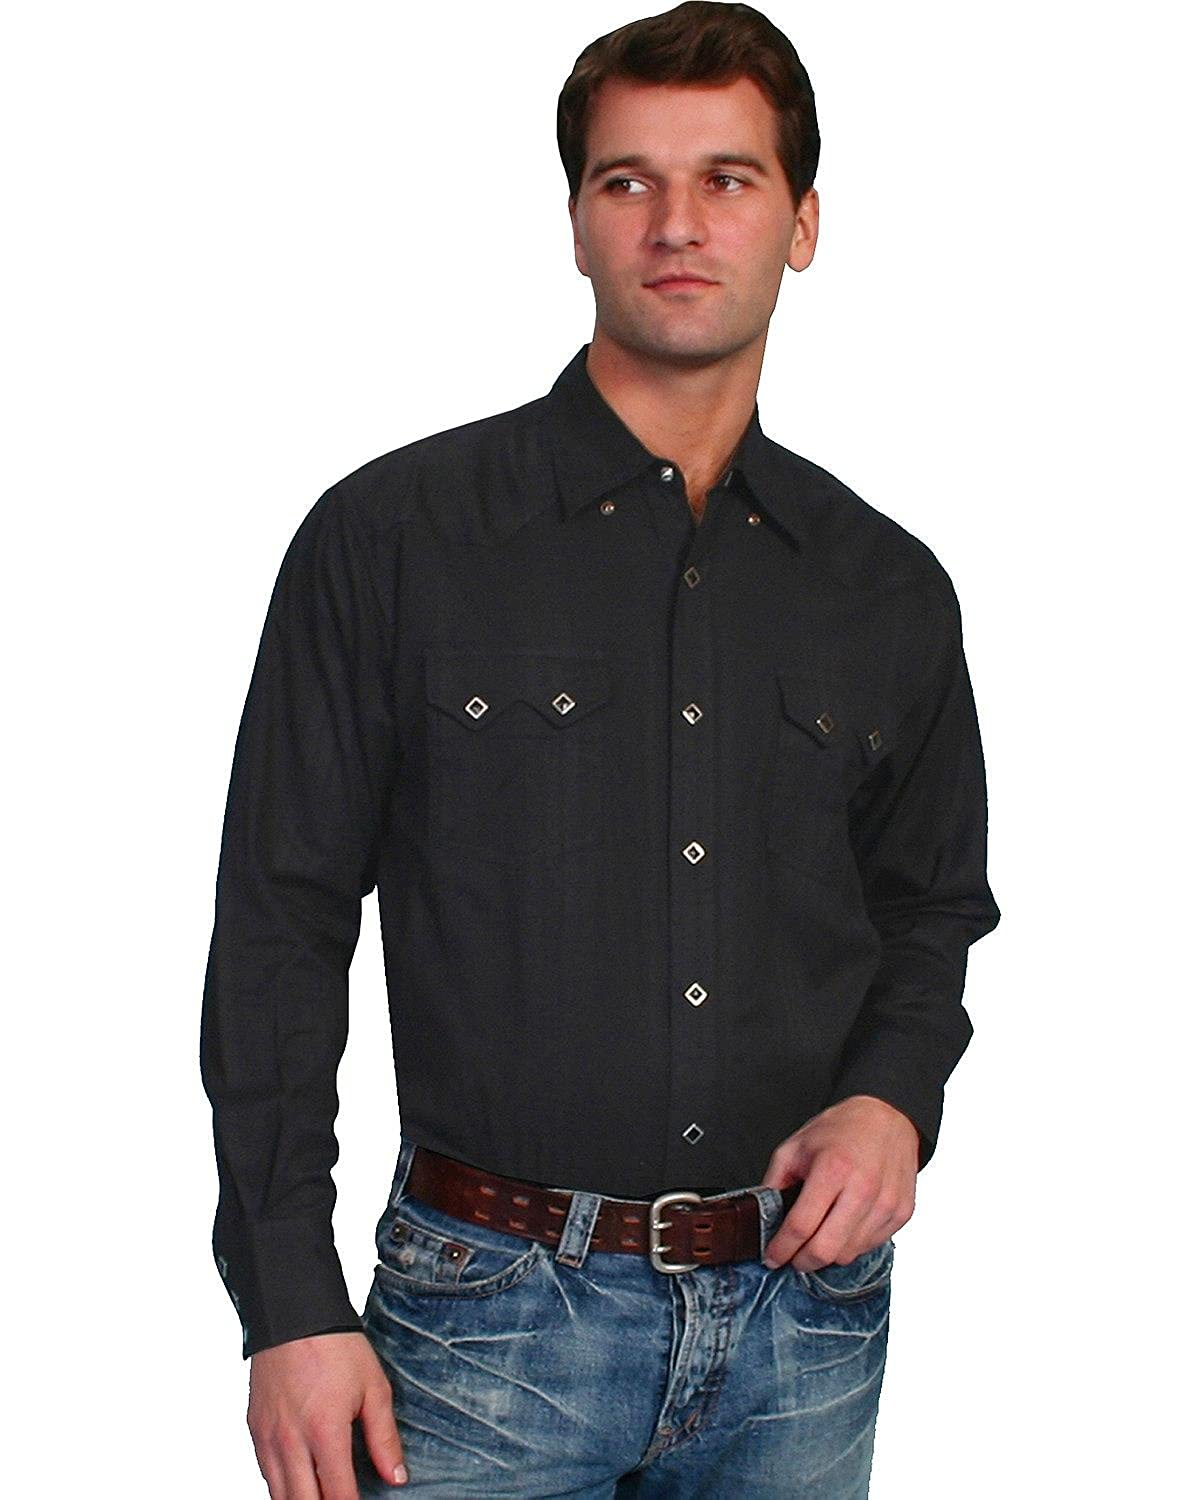 bf18ea79b7 Scully Men s Tone-On-Tone Dobby Striped Western Shirt at Amazon Men s  Clothing store